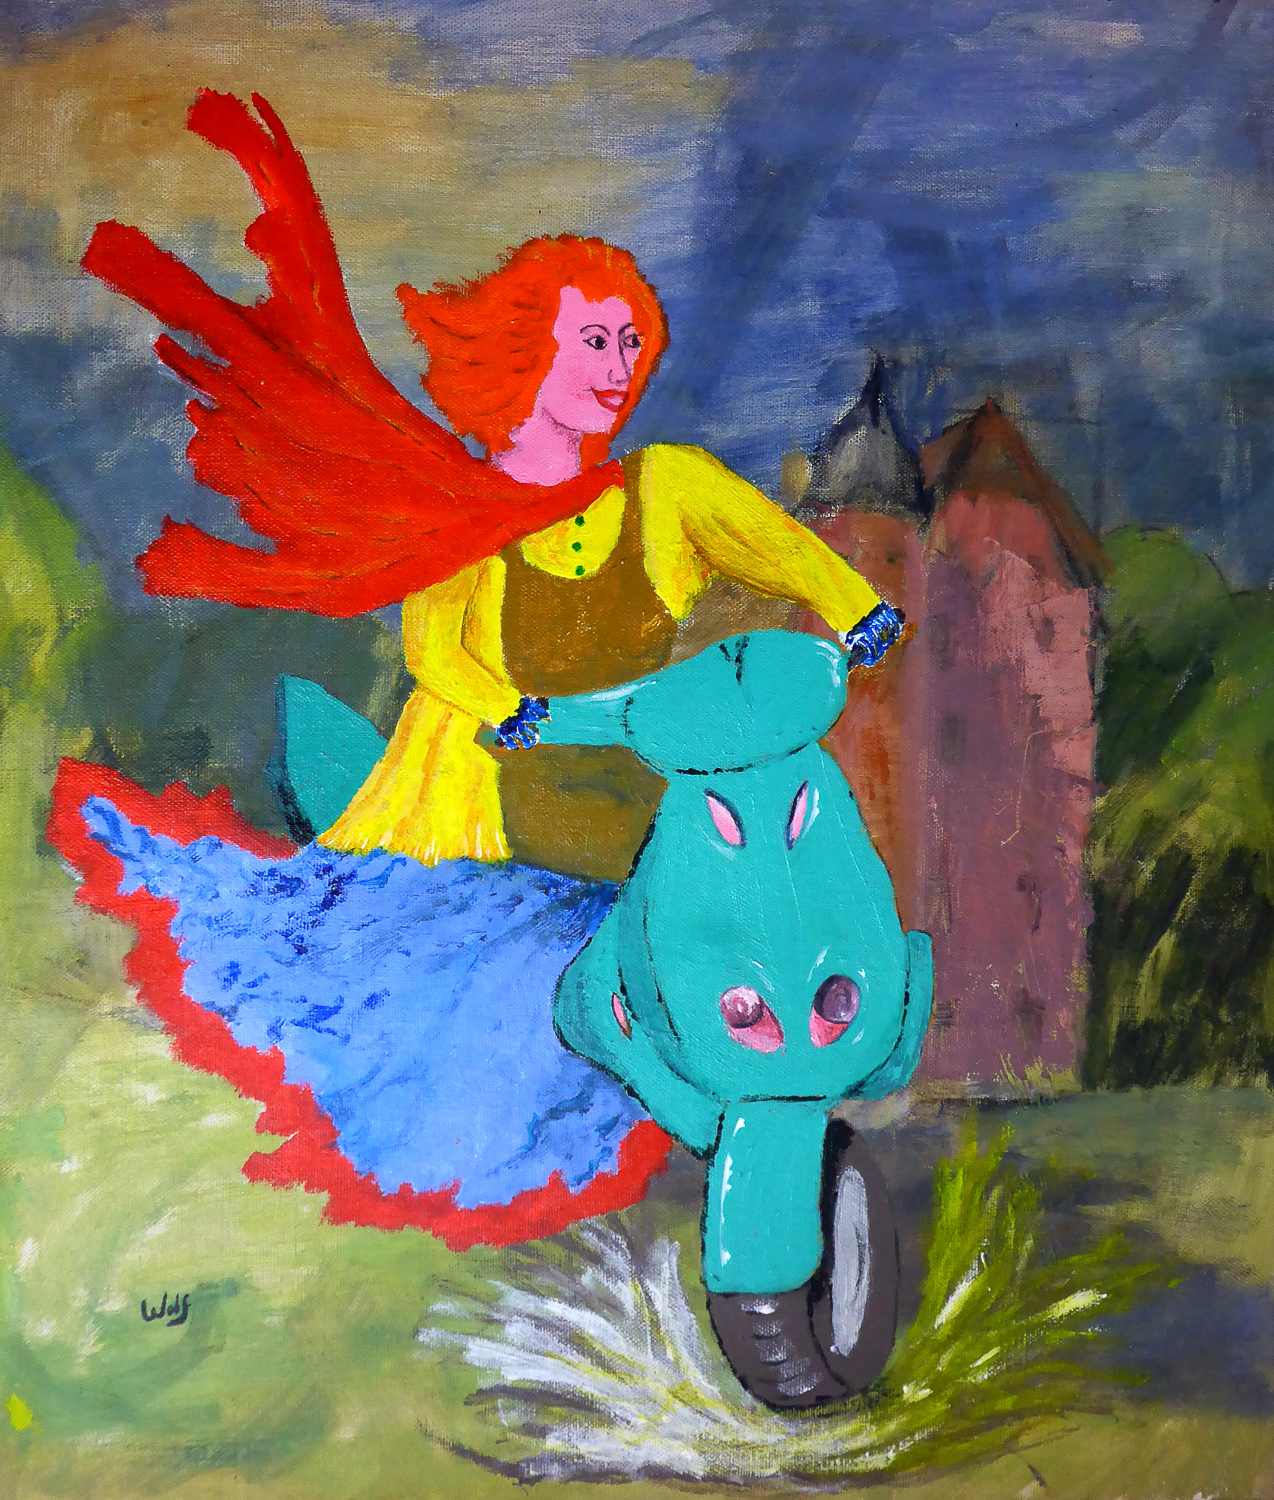 Painting of woman on a motor bike looking happy